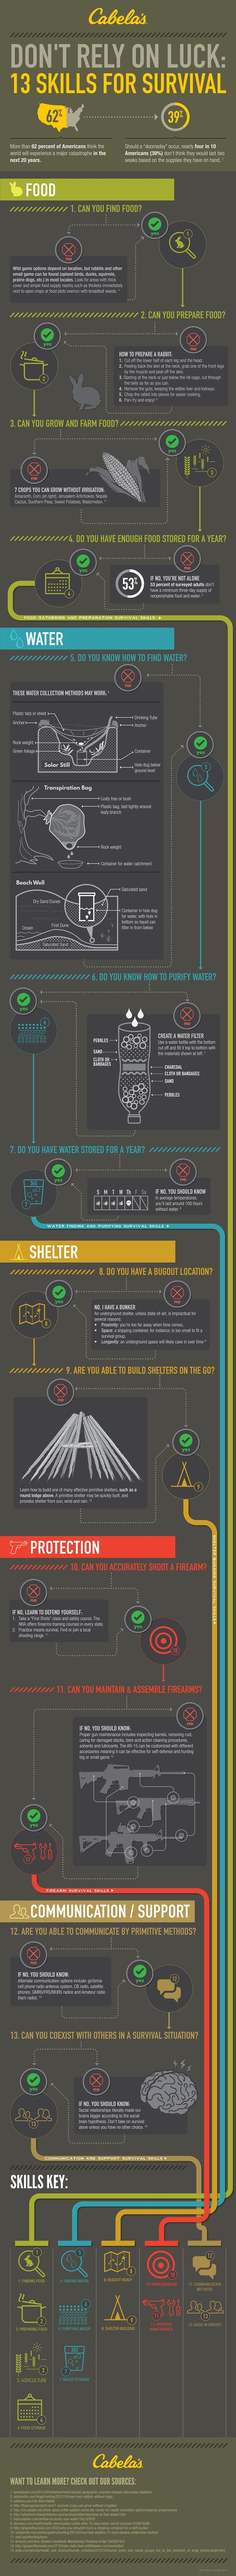 13 Top Survival Skills   Learn Now, Survive Later   Doomsday Prepping For Beginners Or Seasoned Prepper by Survival Life at http://survivallife.com/2015/12/09/survival-skills-infographic/